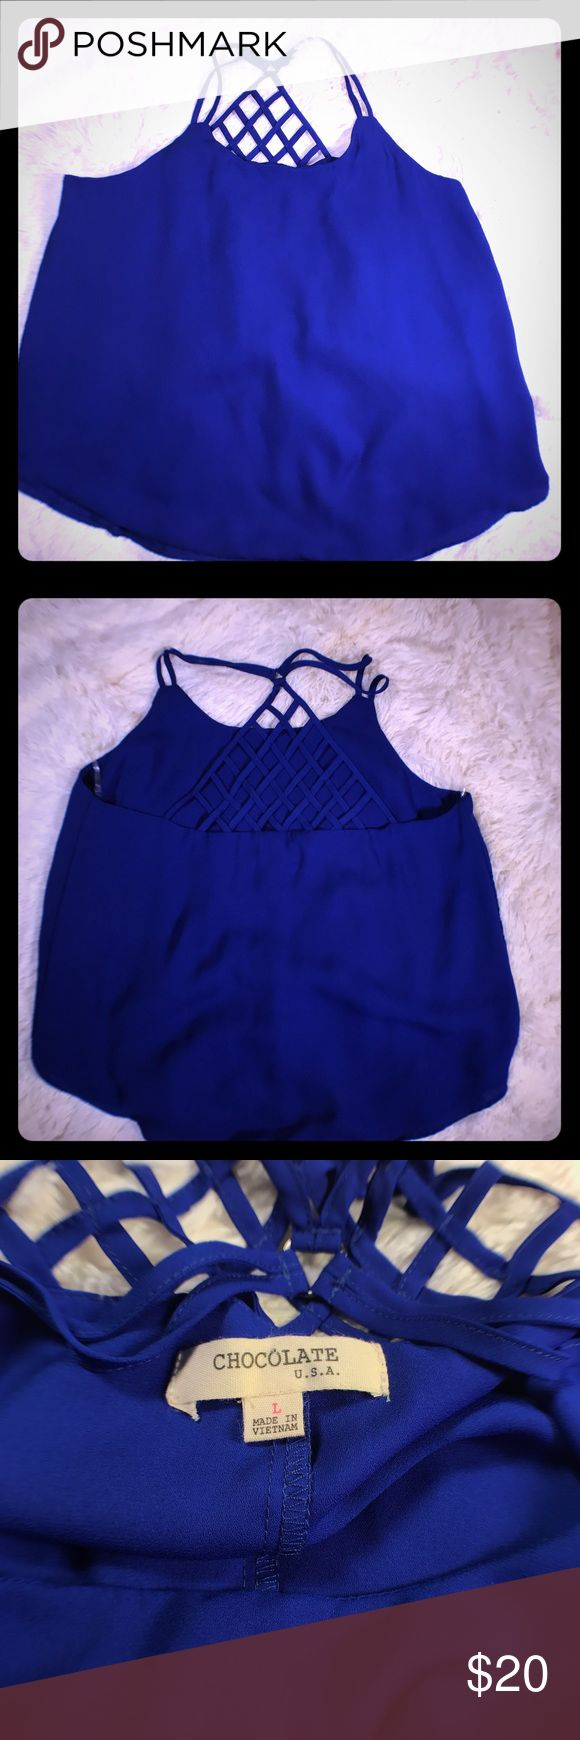 BLUE CAMI SIZE LARGE. NWOT ROYAL BLUE CAMI SIZE LARGE. NWOT 💥No other discounts given. PRICE IS FIRM💥💥 Tops Camisoles